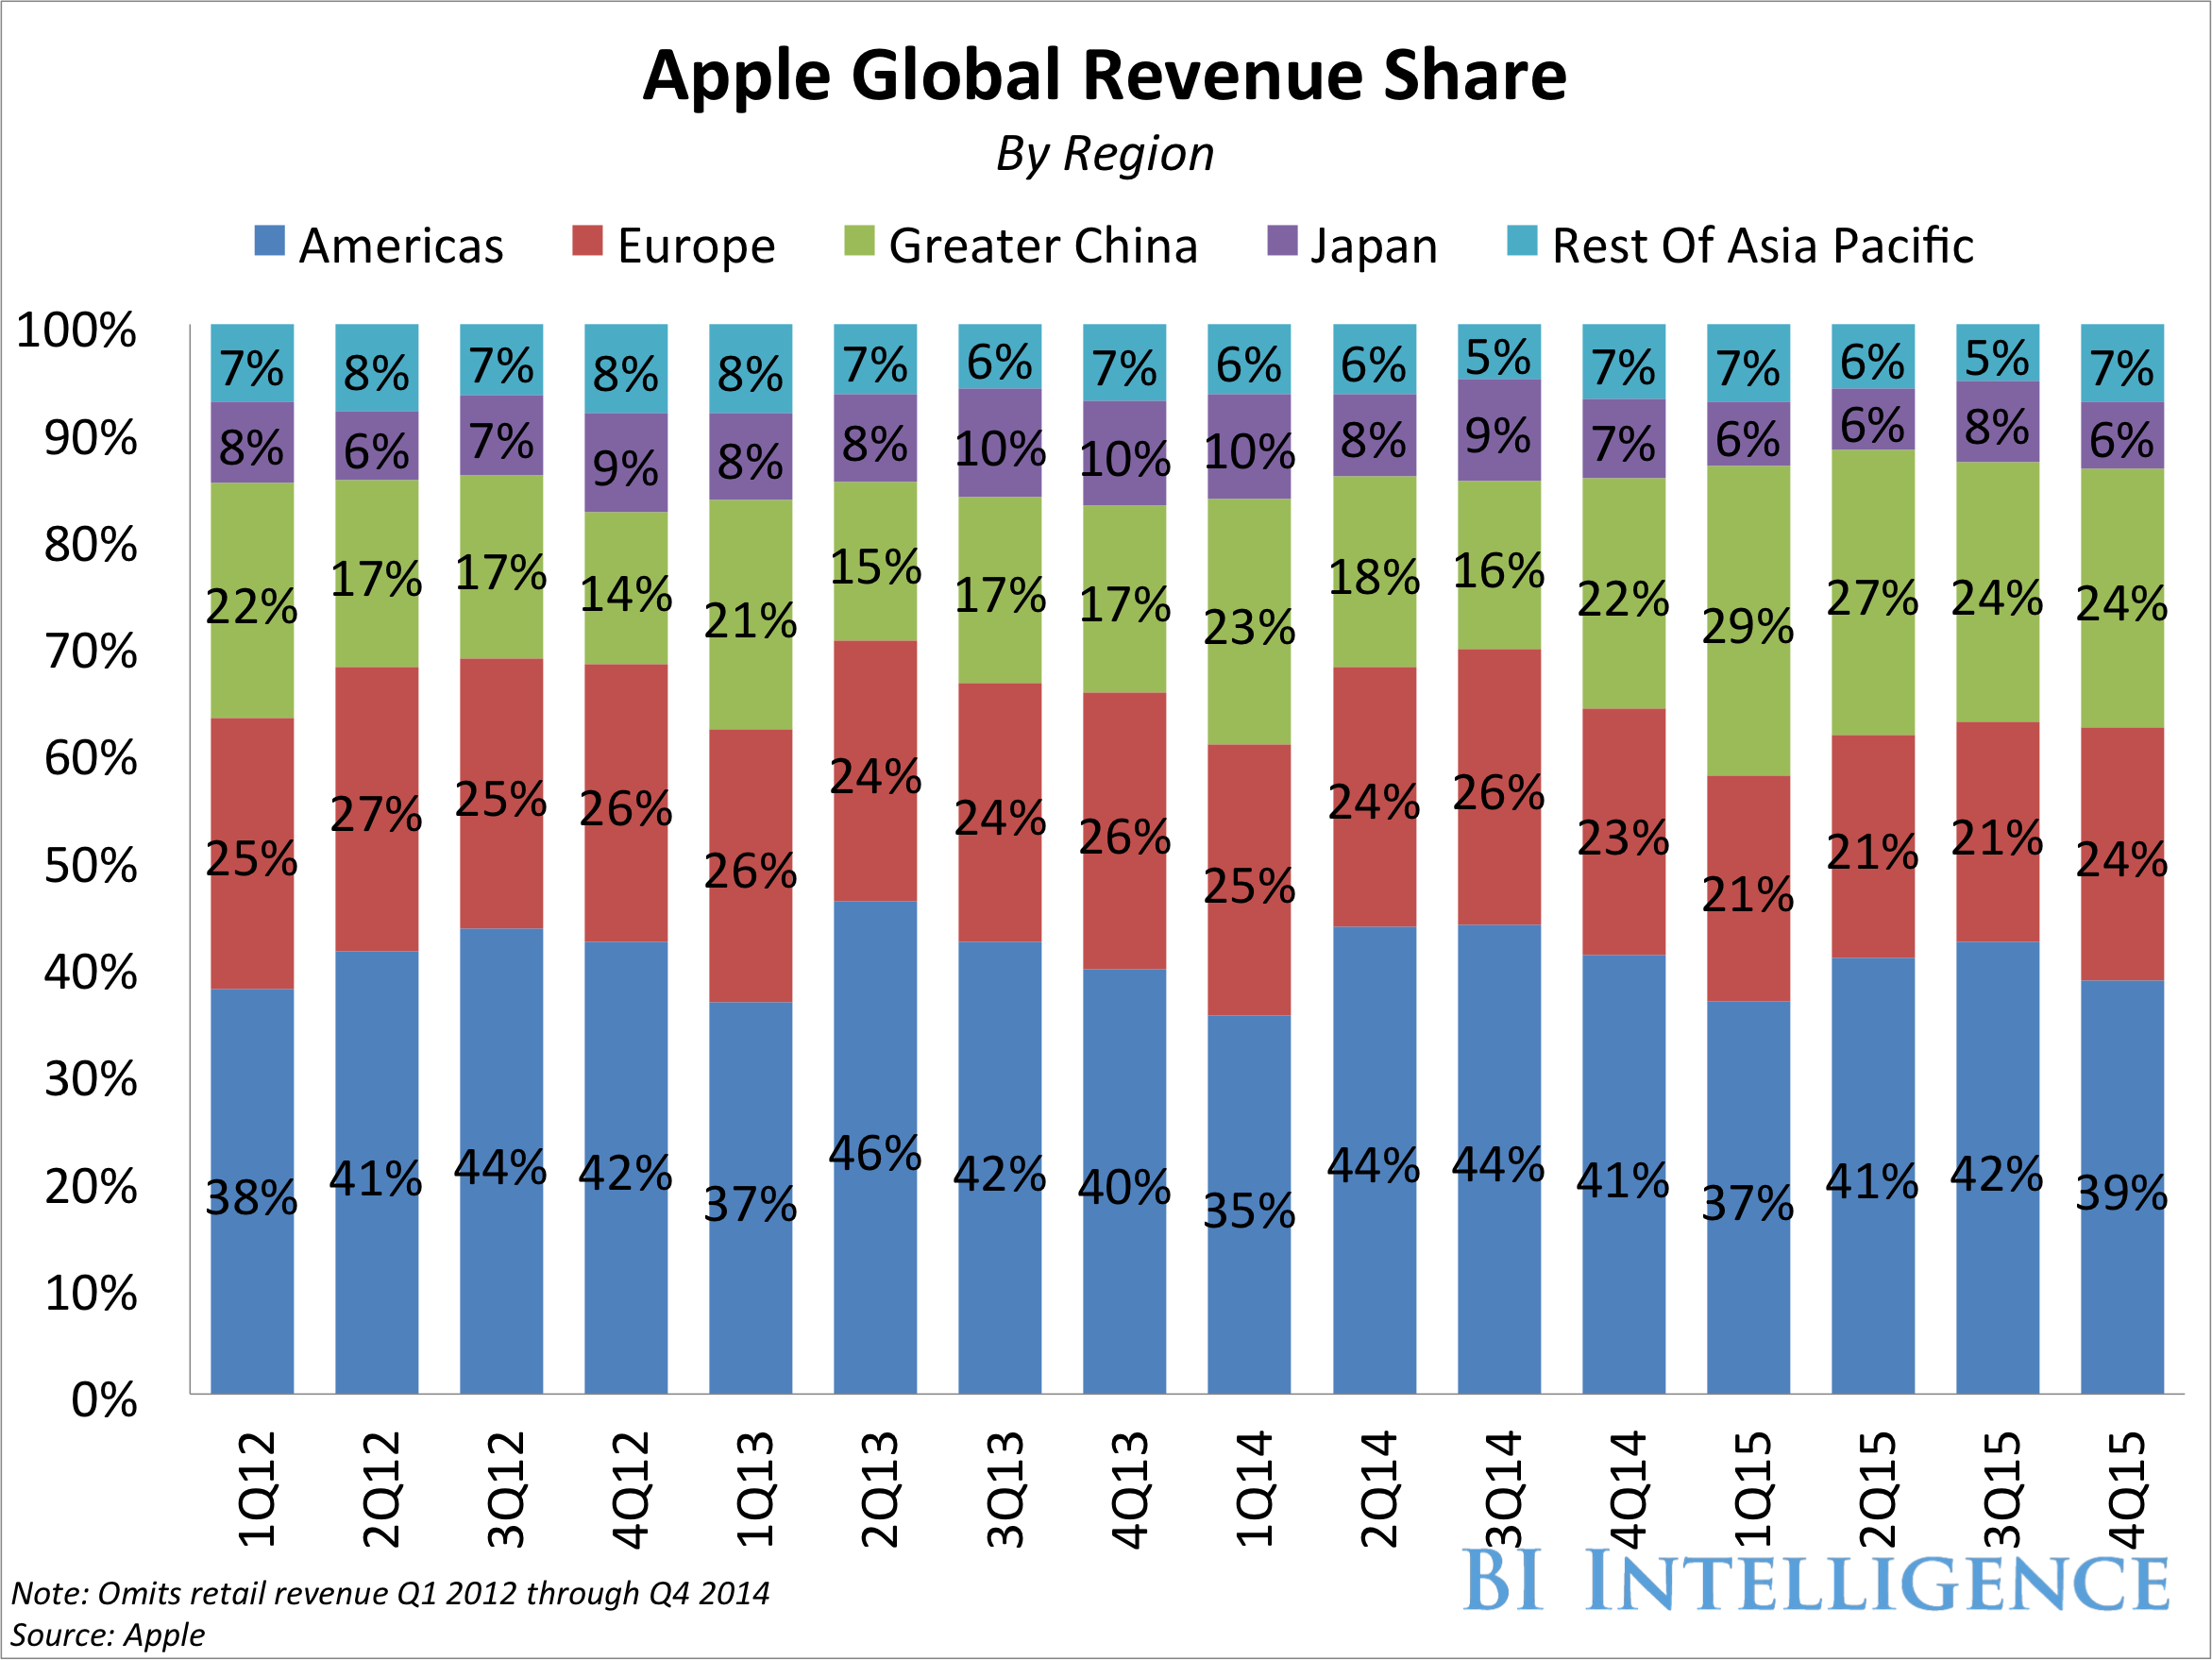 apple earnings share by region 4q15 stacked